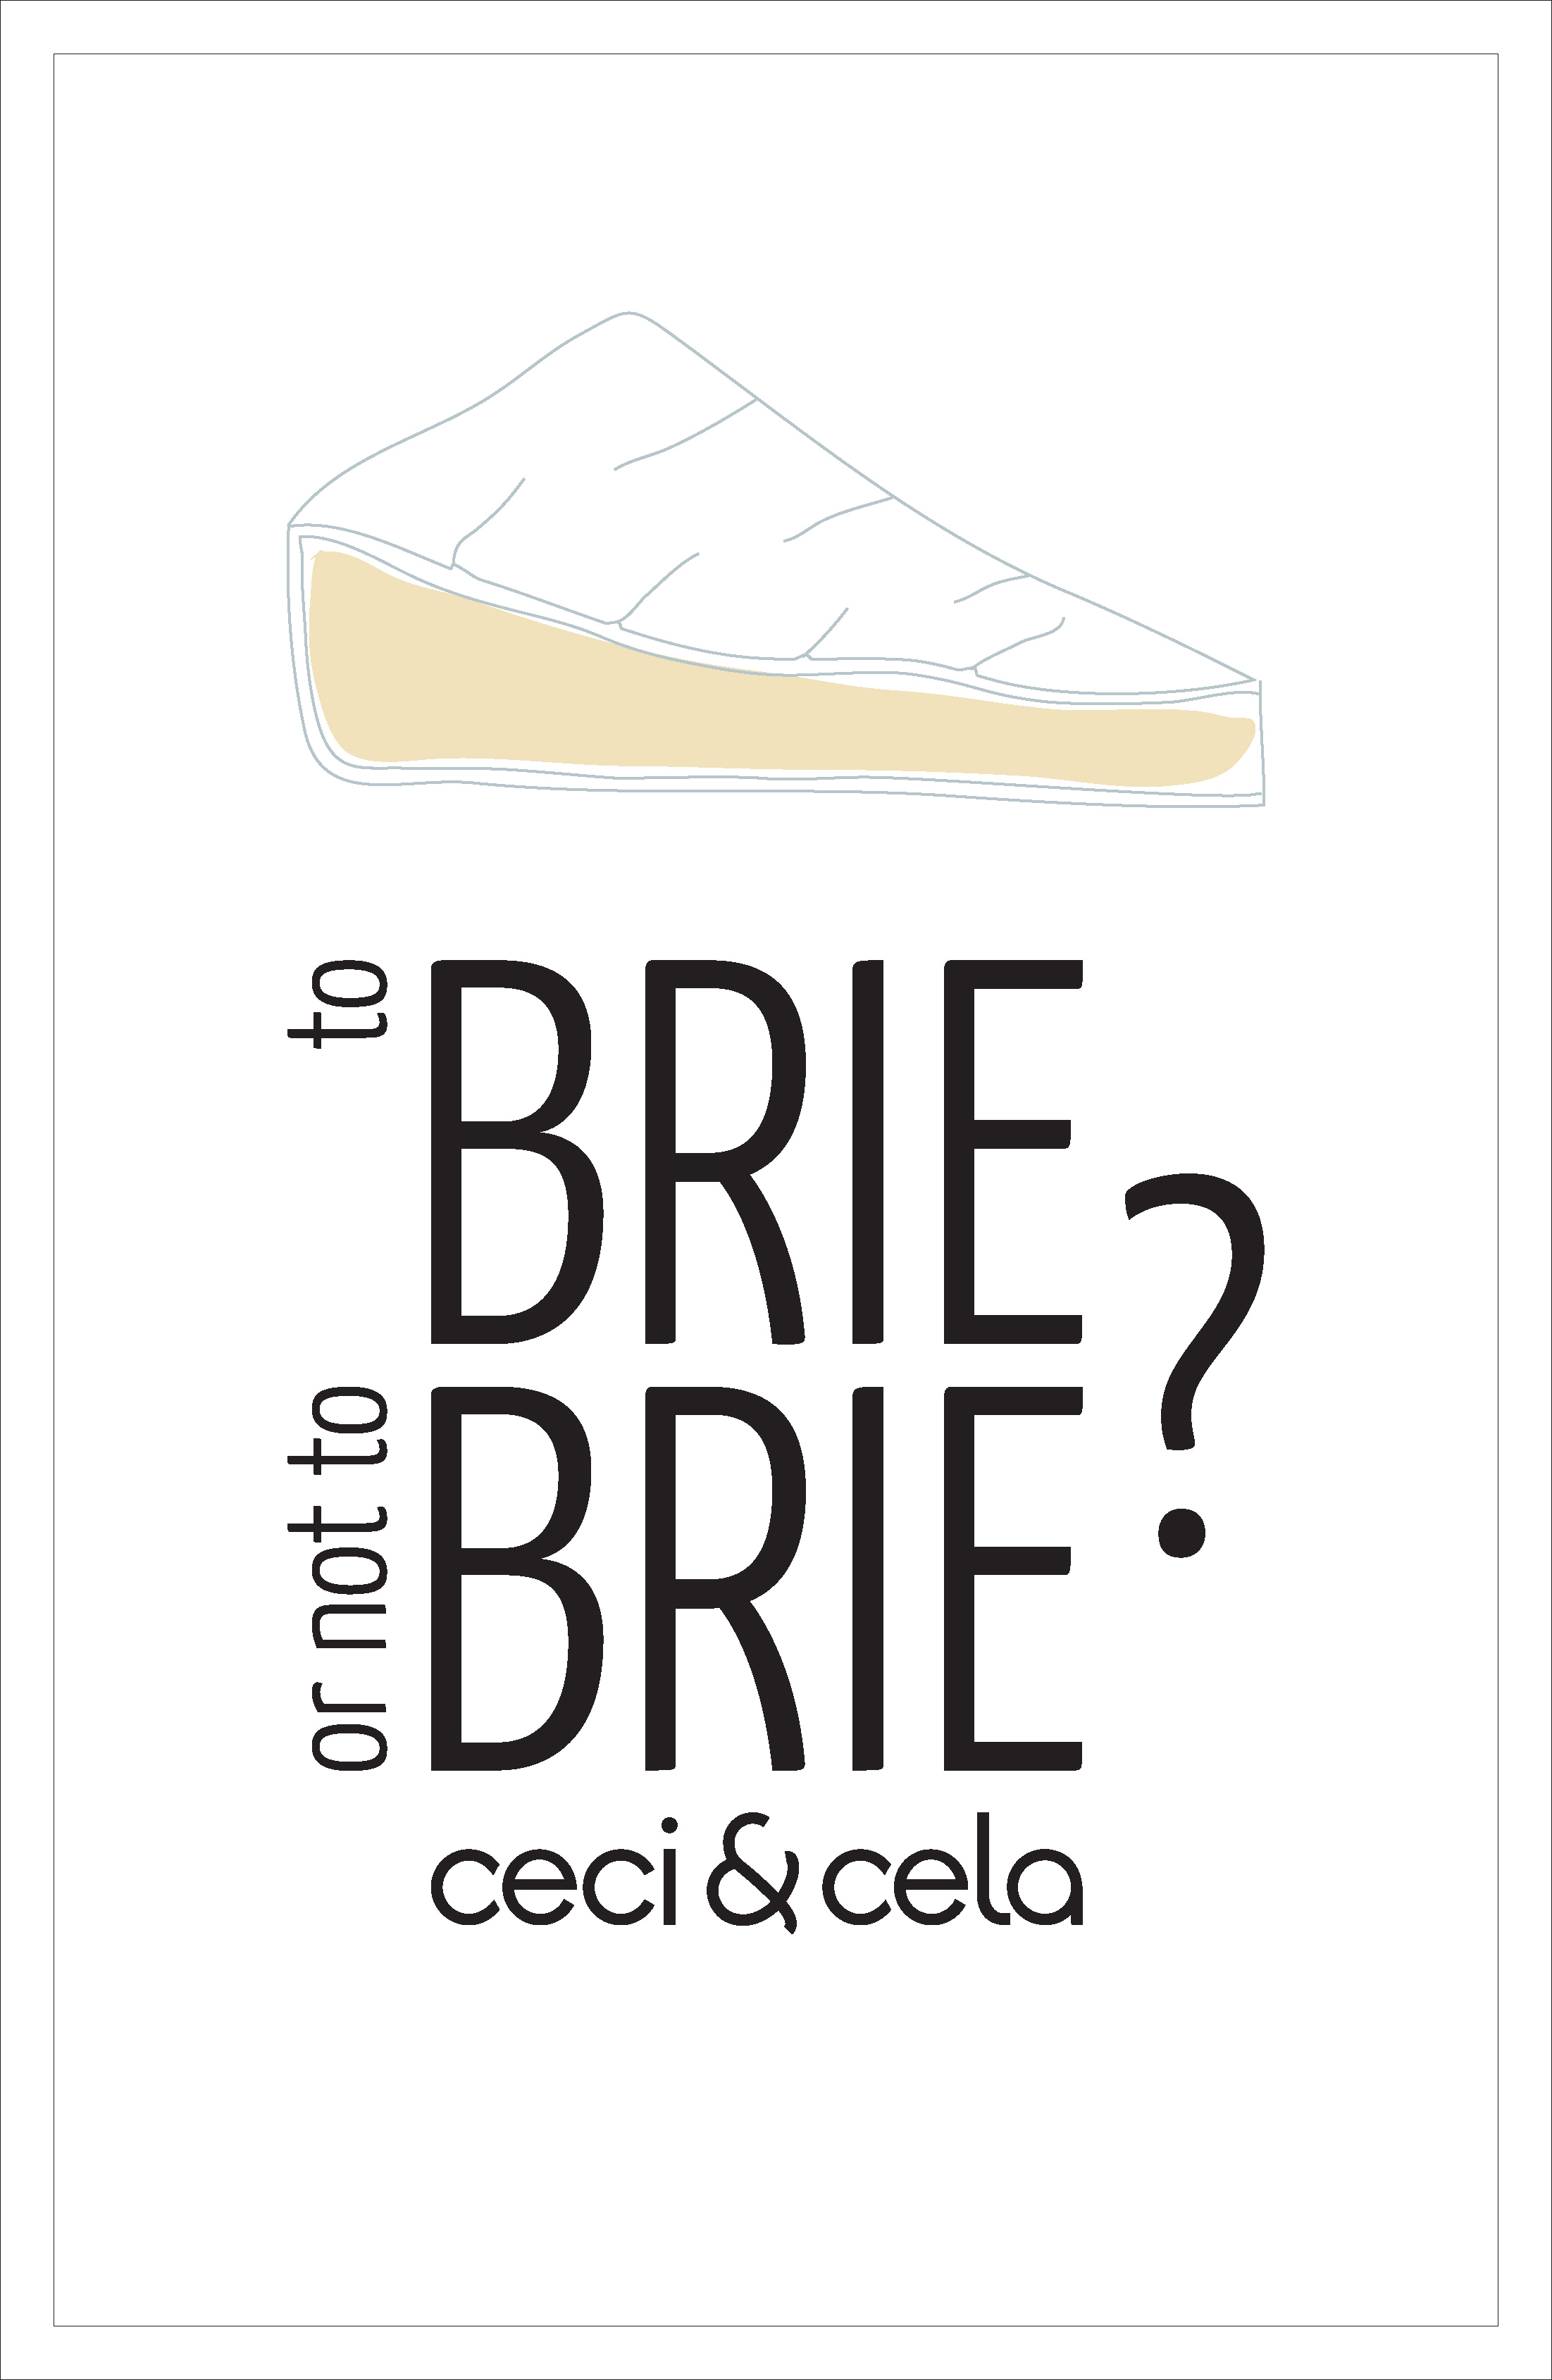 To_brie_or_not_to_brie-1456585484.jpg